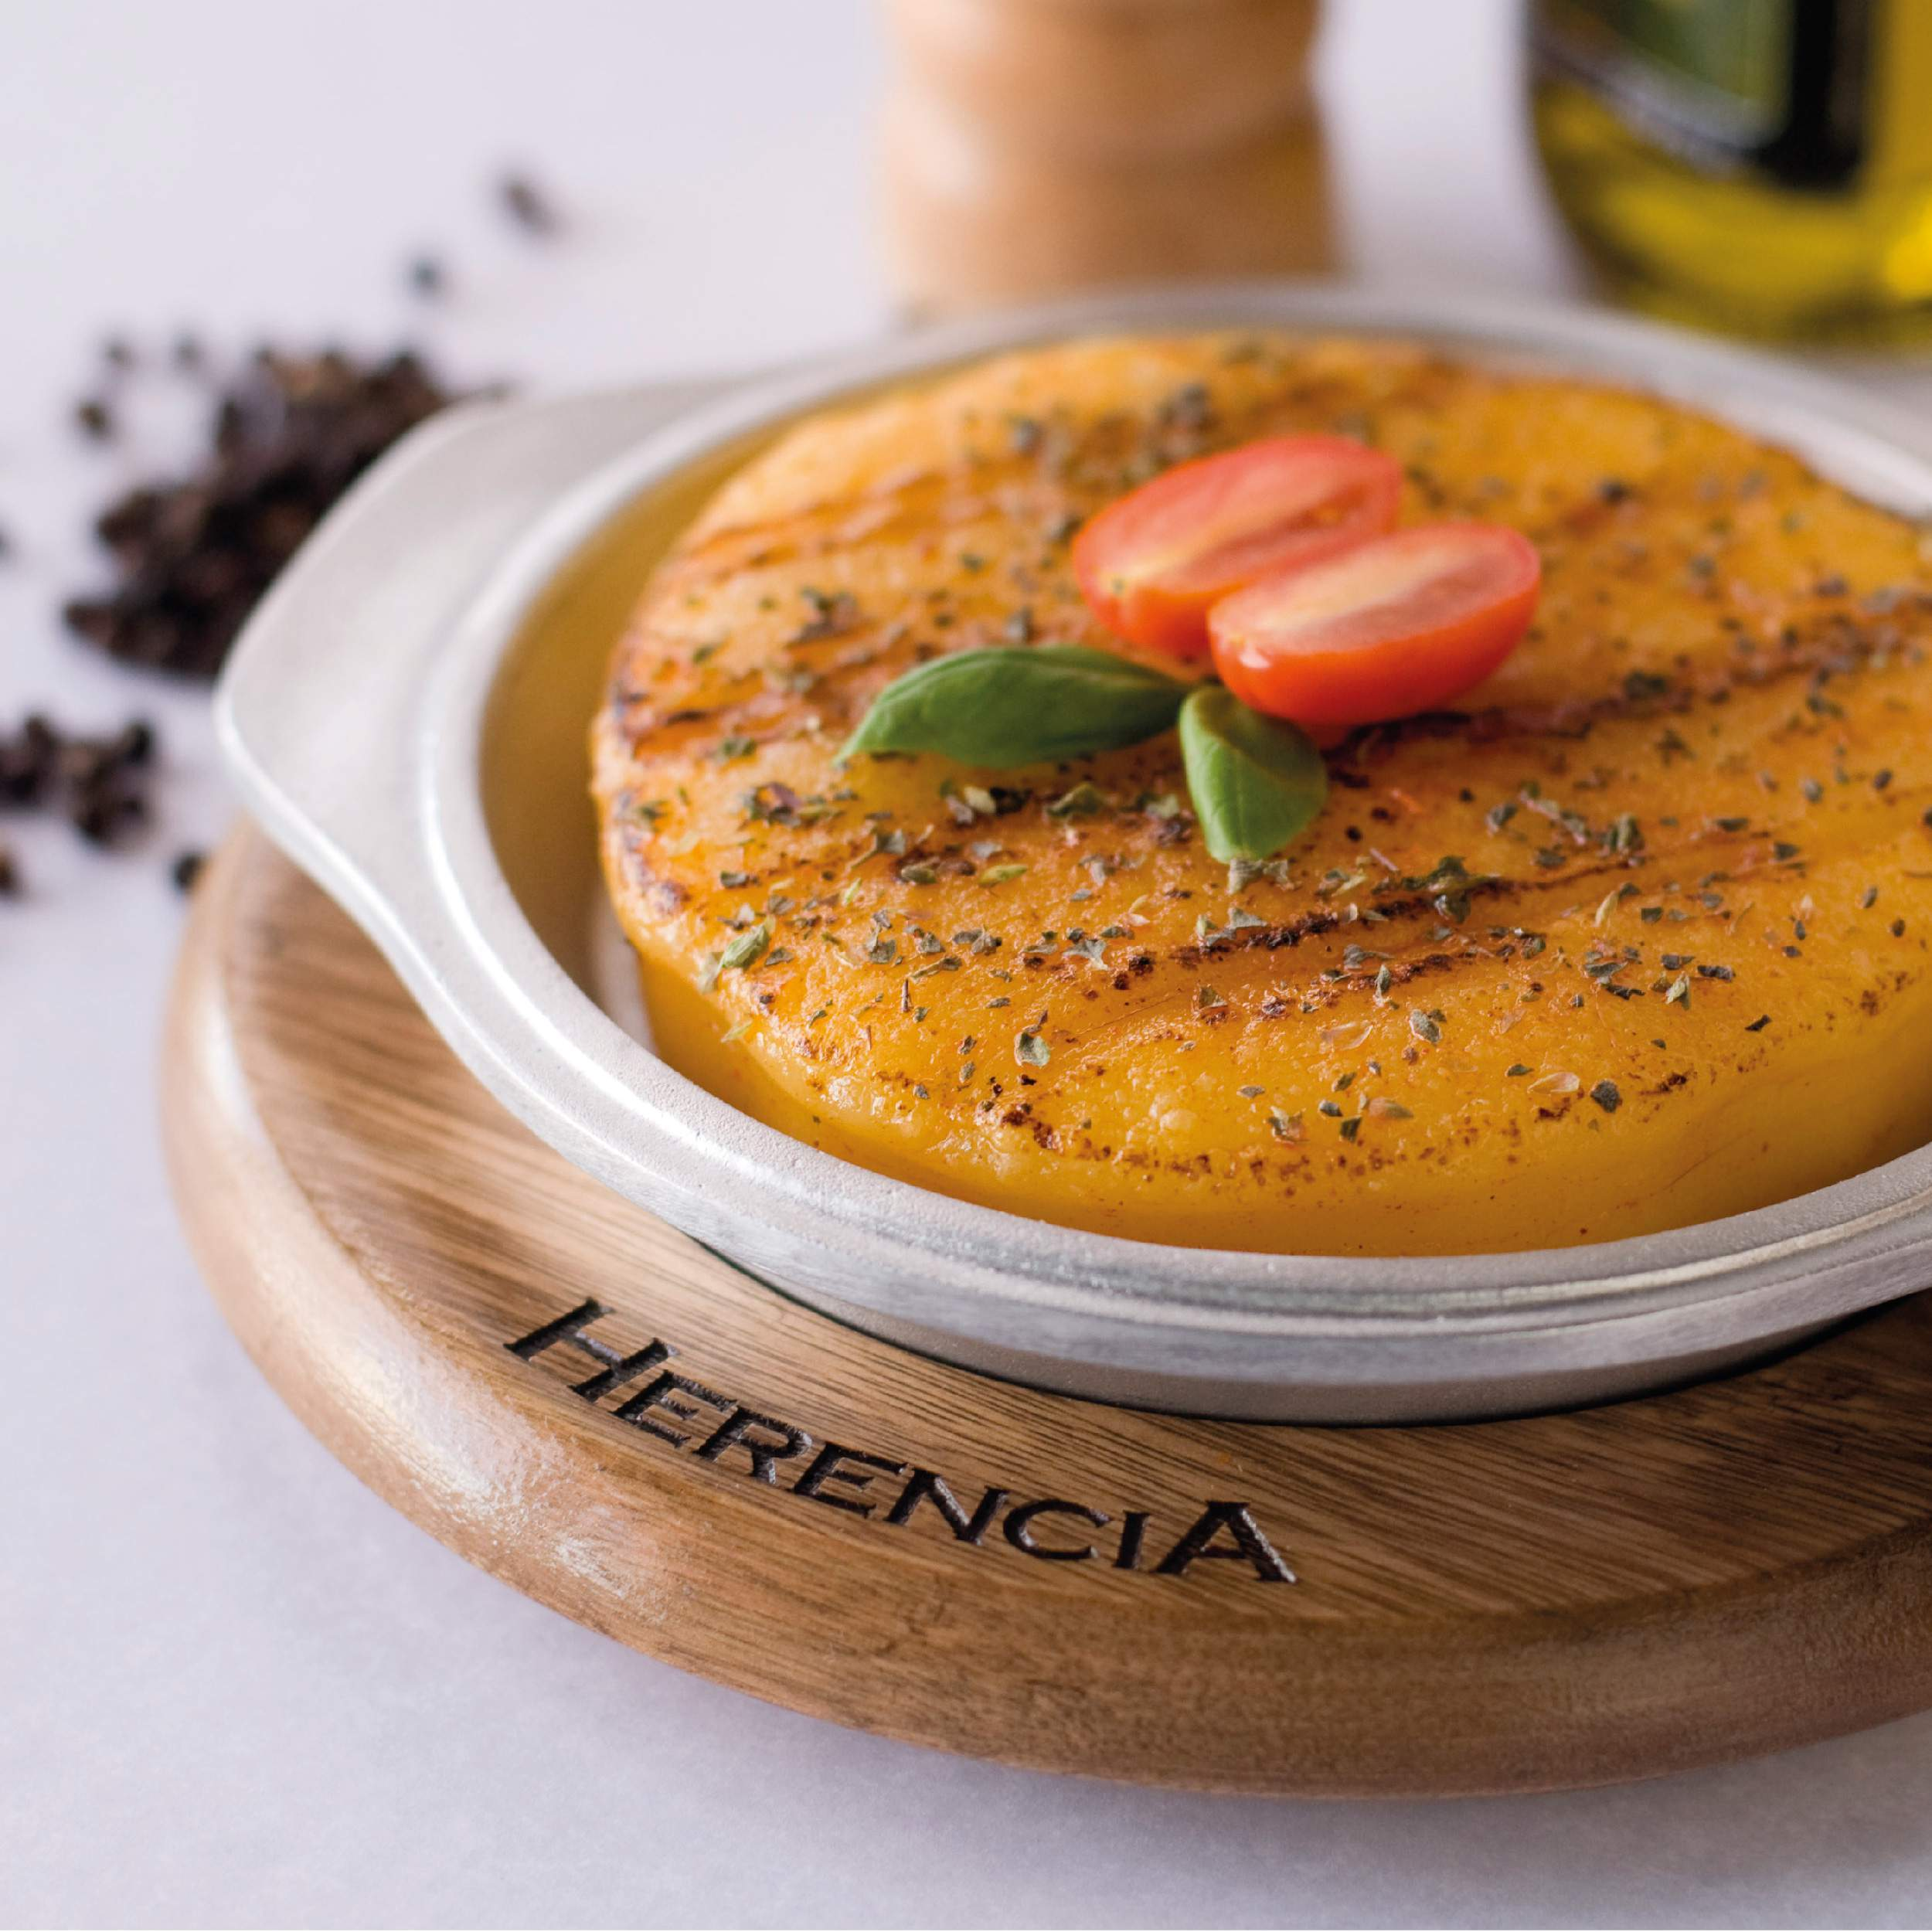 Herencia Grill